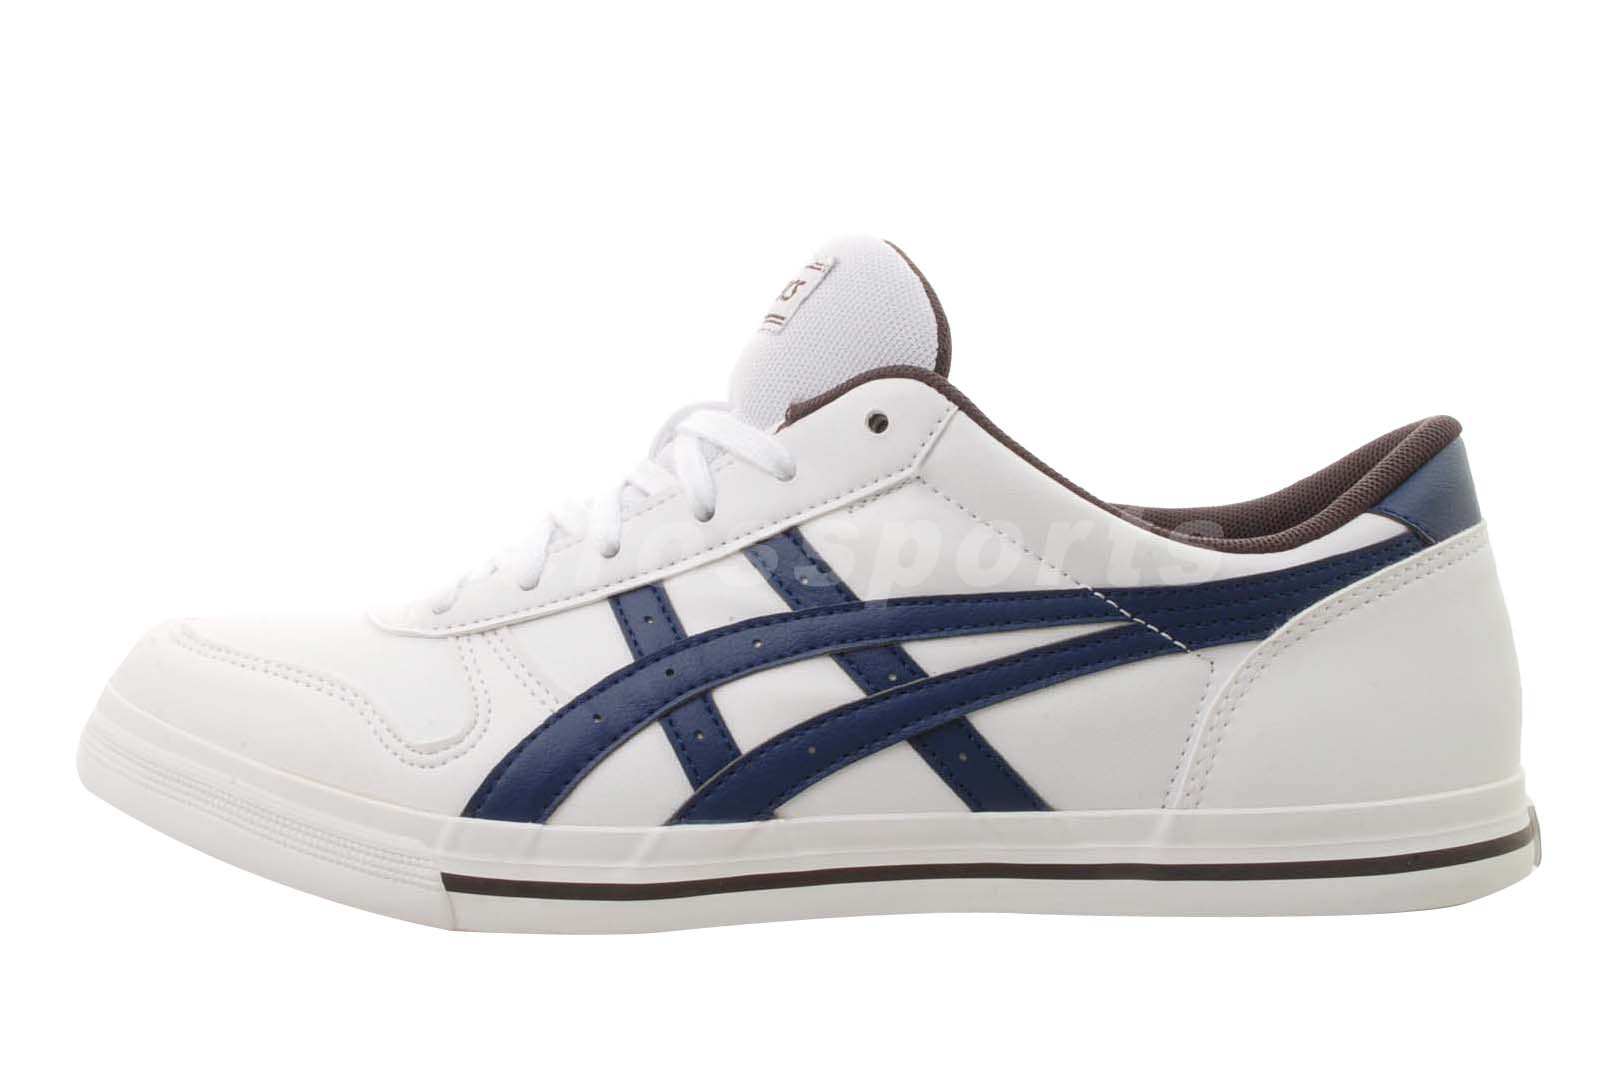 asics aaron white blue mens womens classic casual